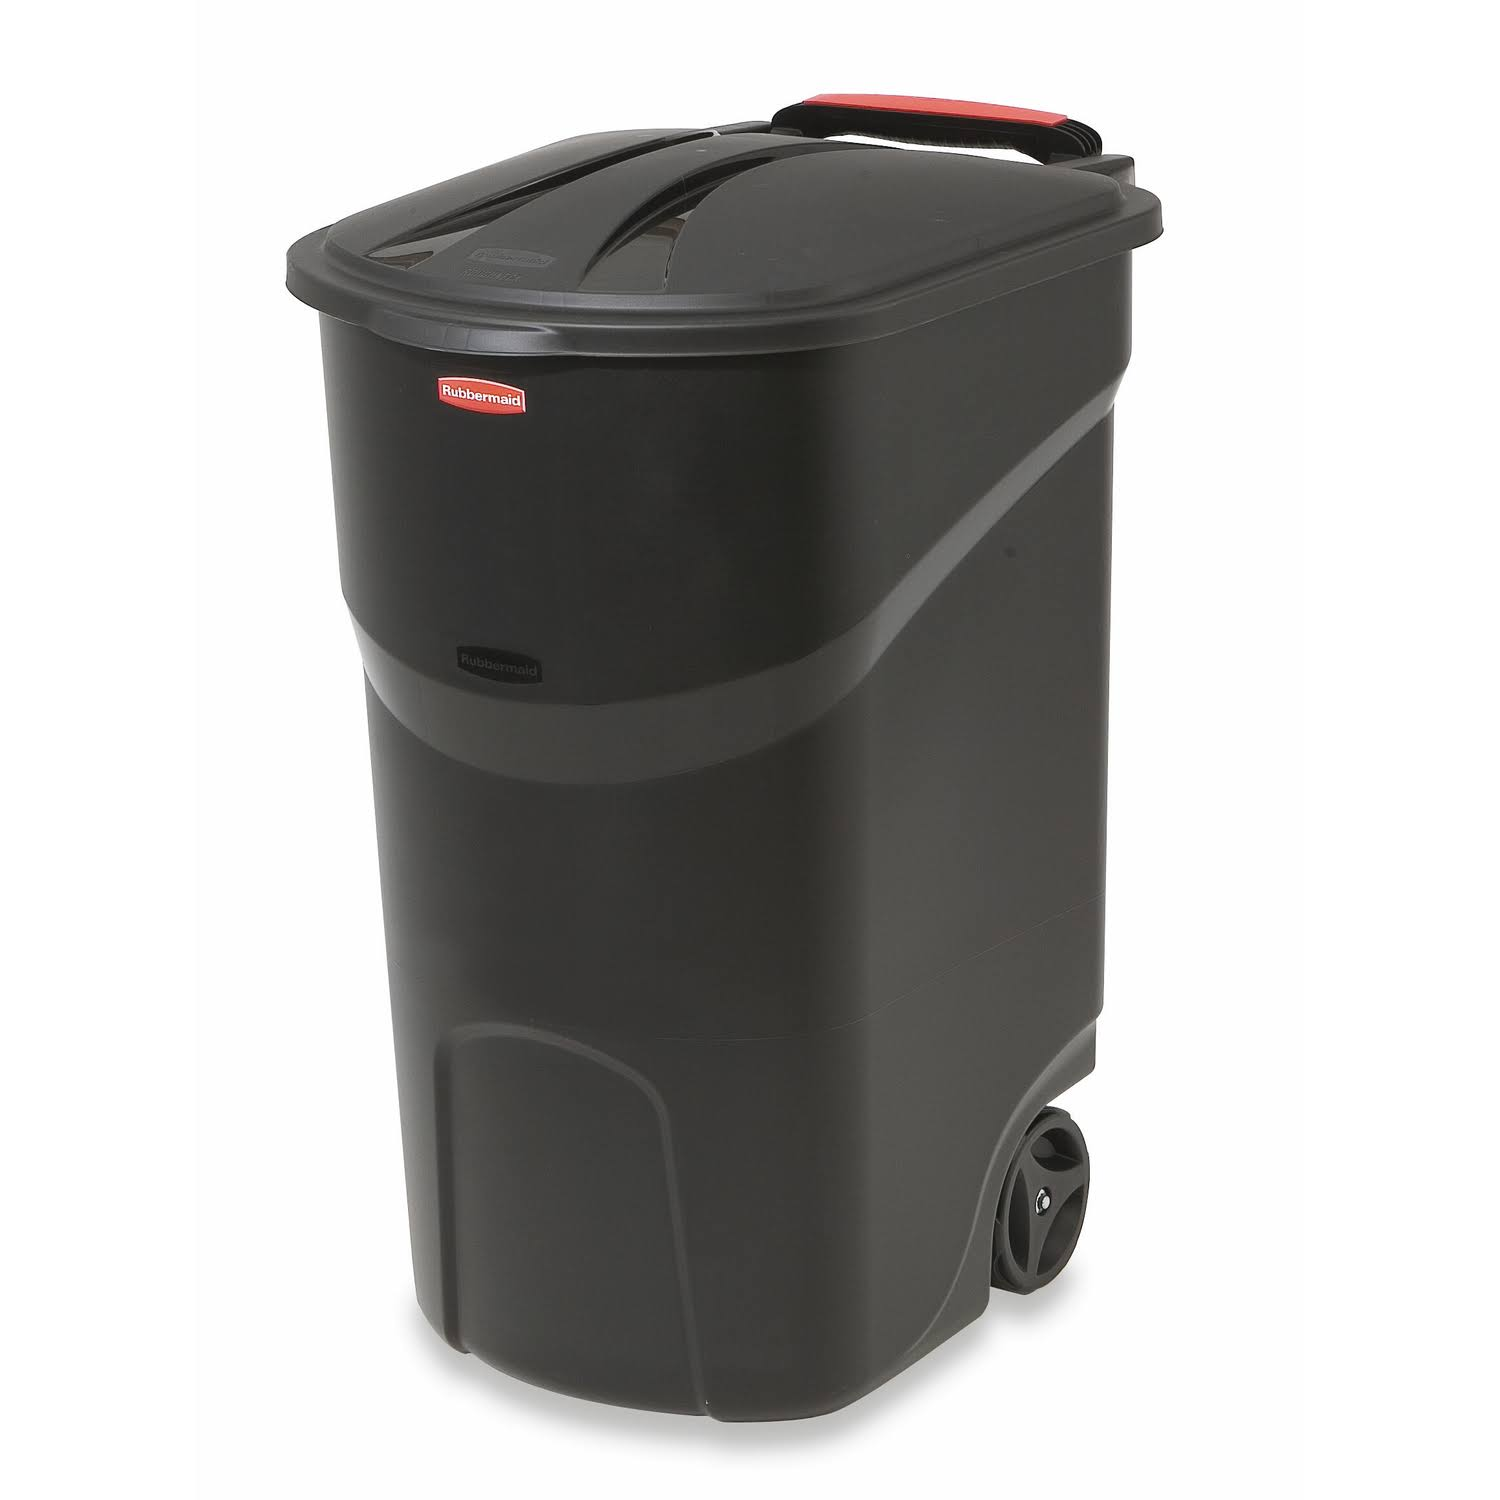 Rubbermaid Roughneck Wheeled Trash Can - with Lid, Black, 45gal